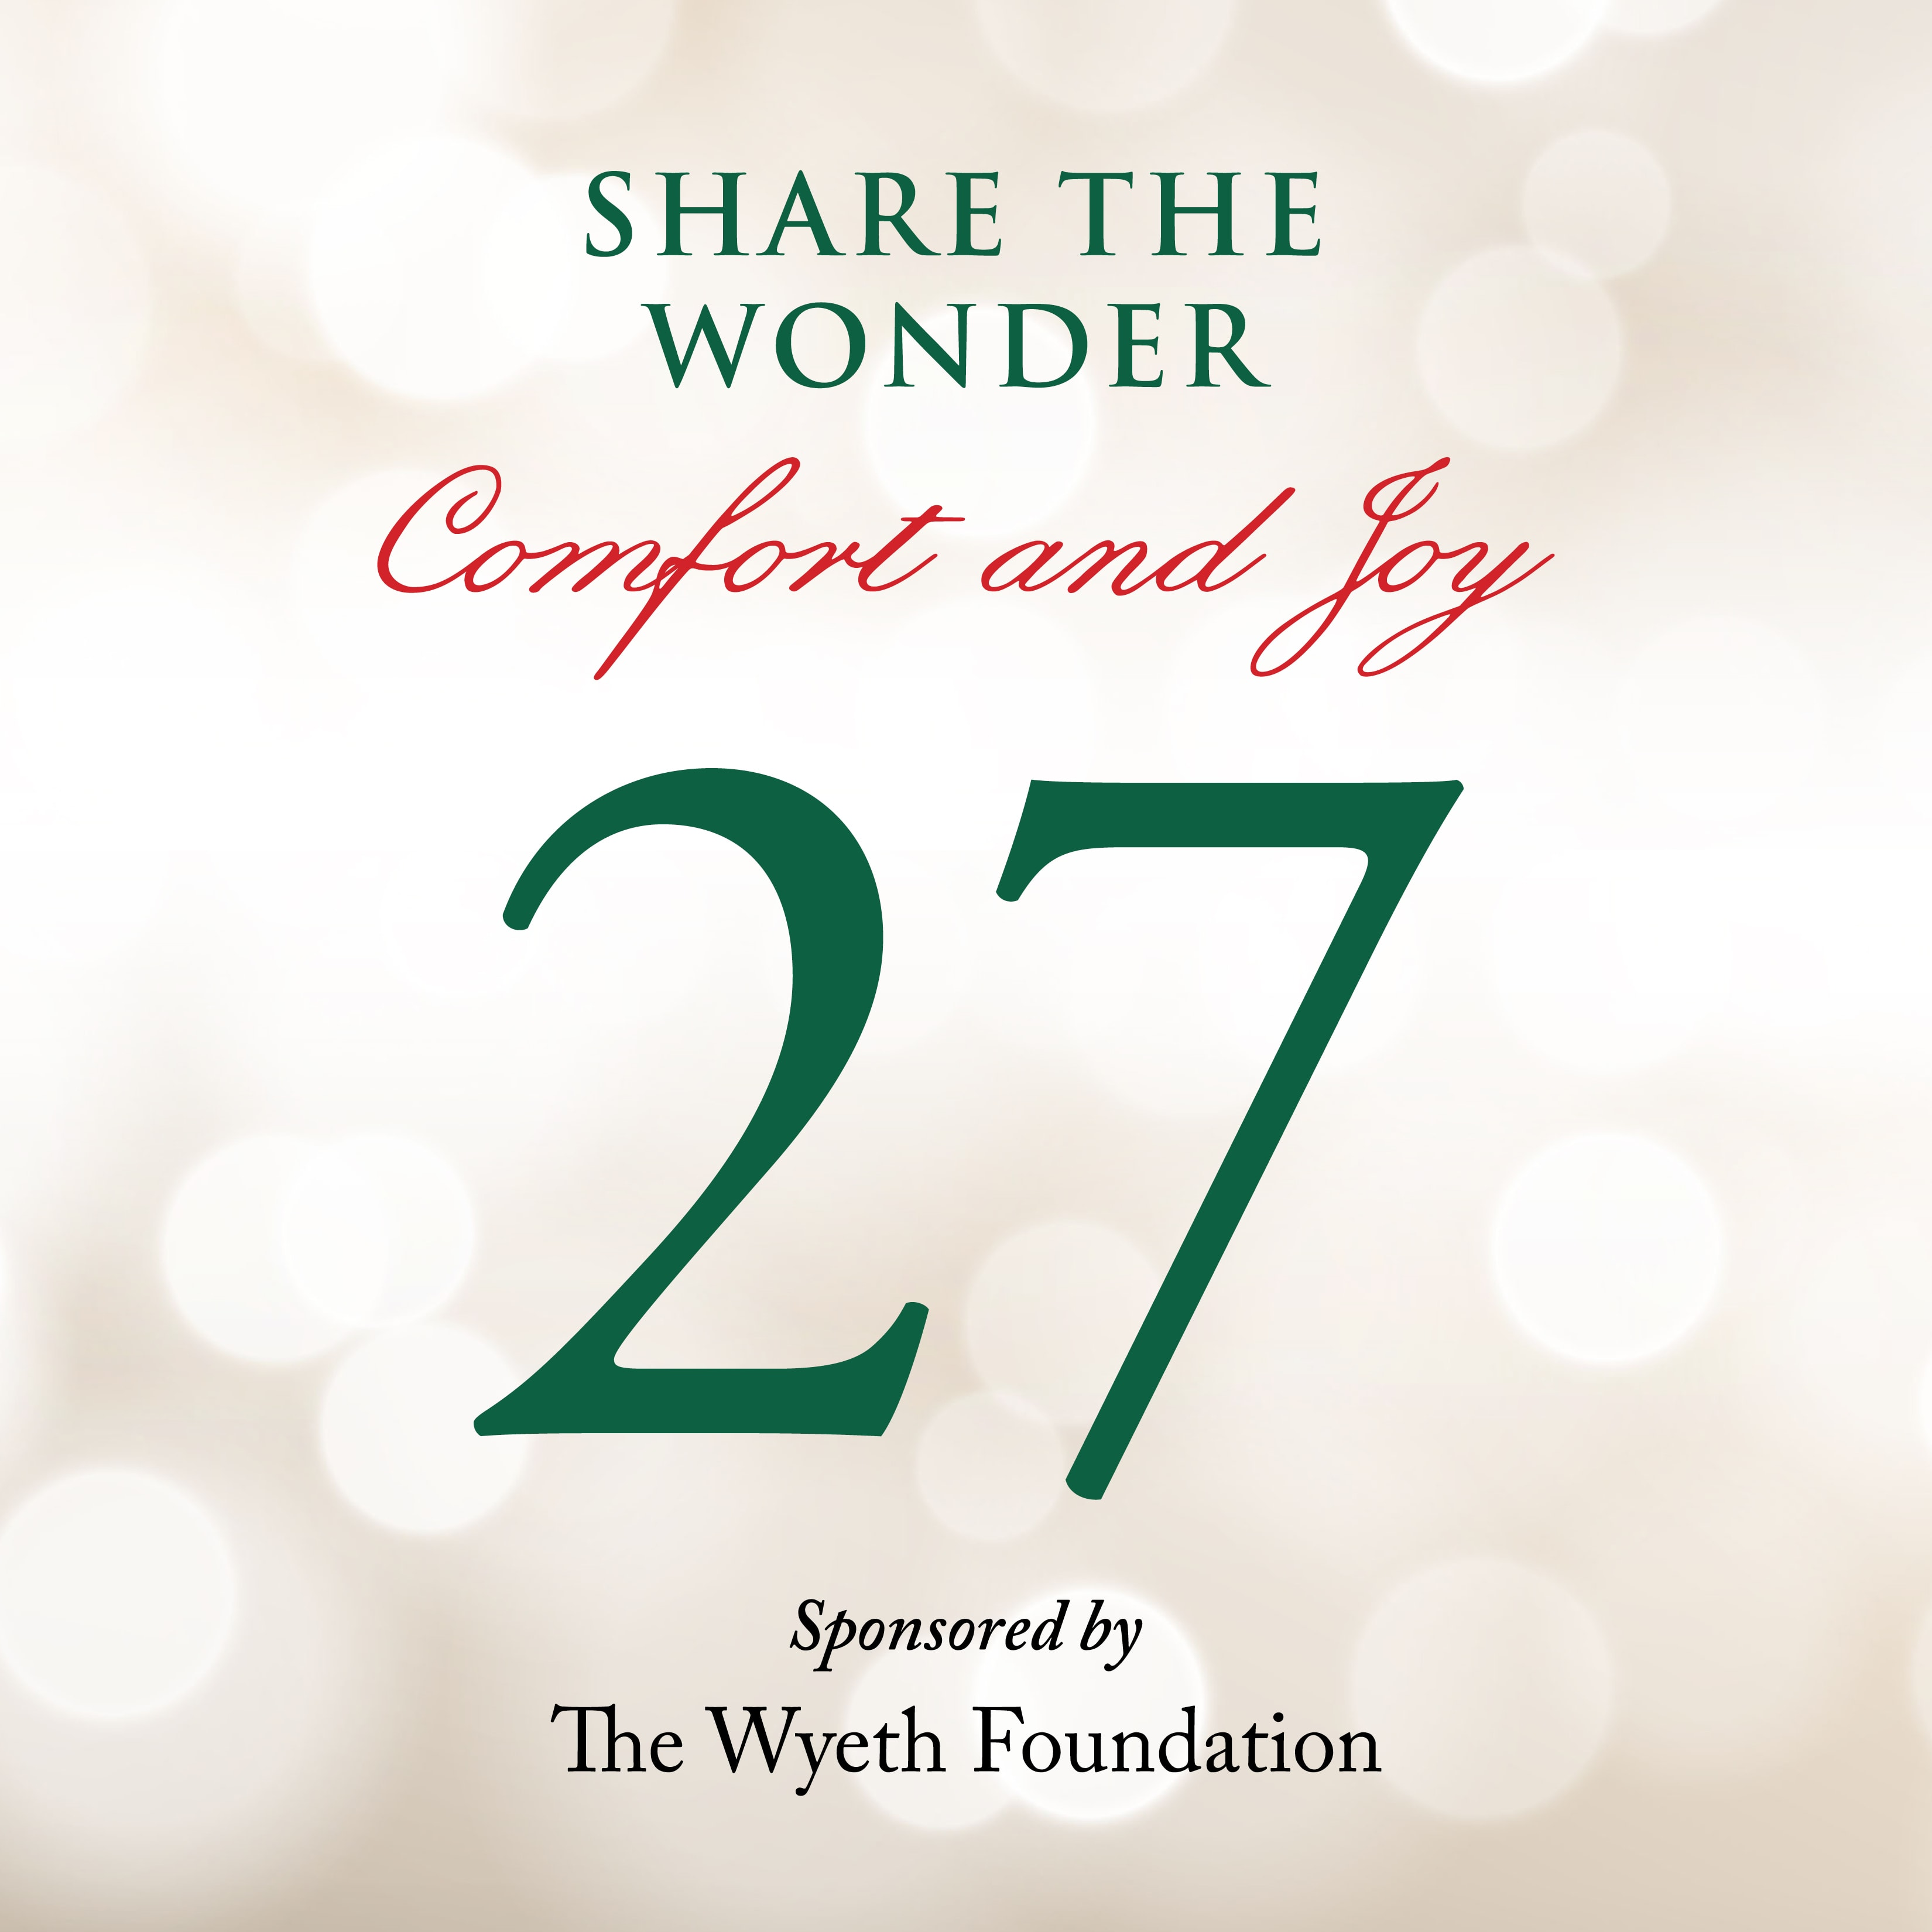 Day 27 of Share the Wonder: December 24